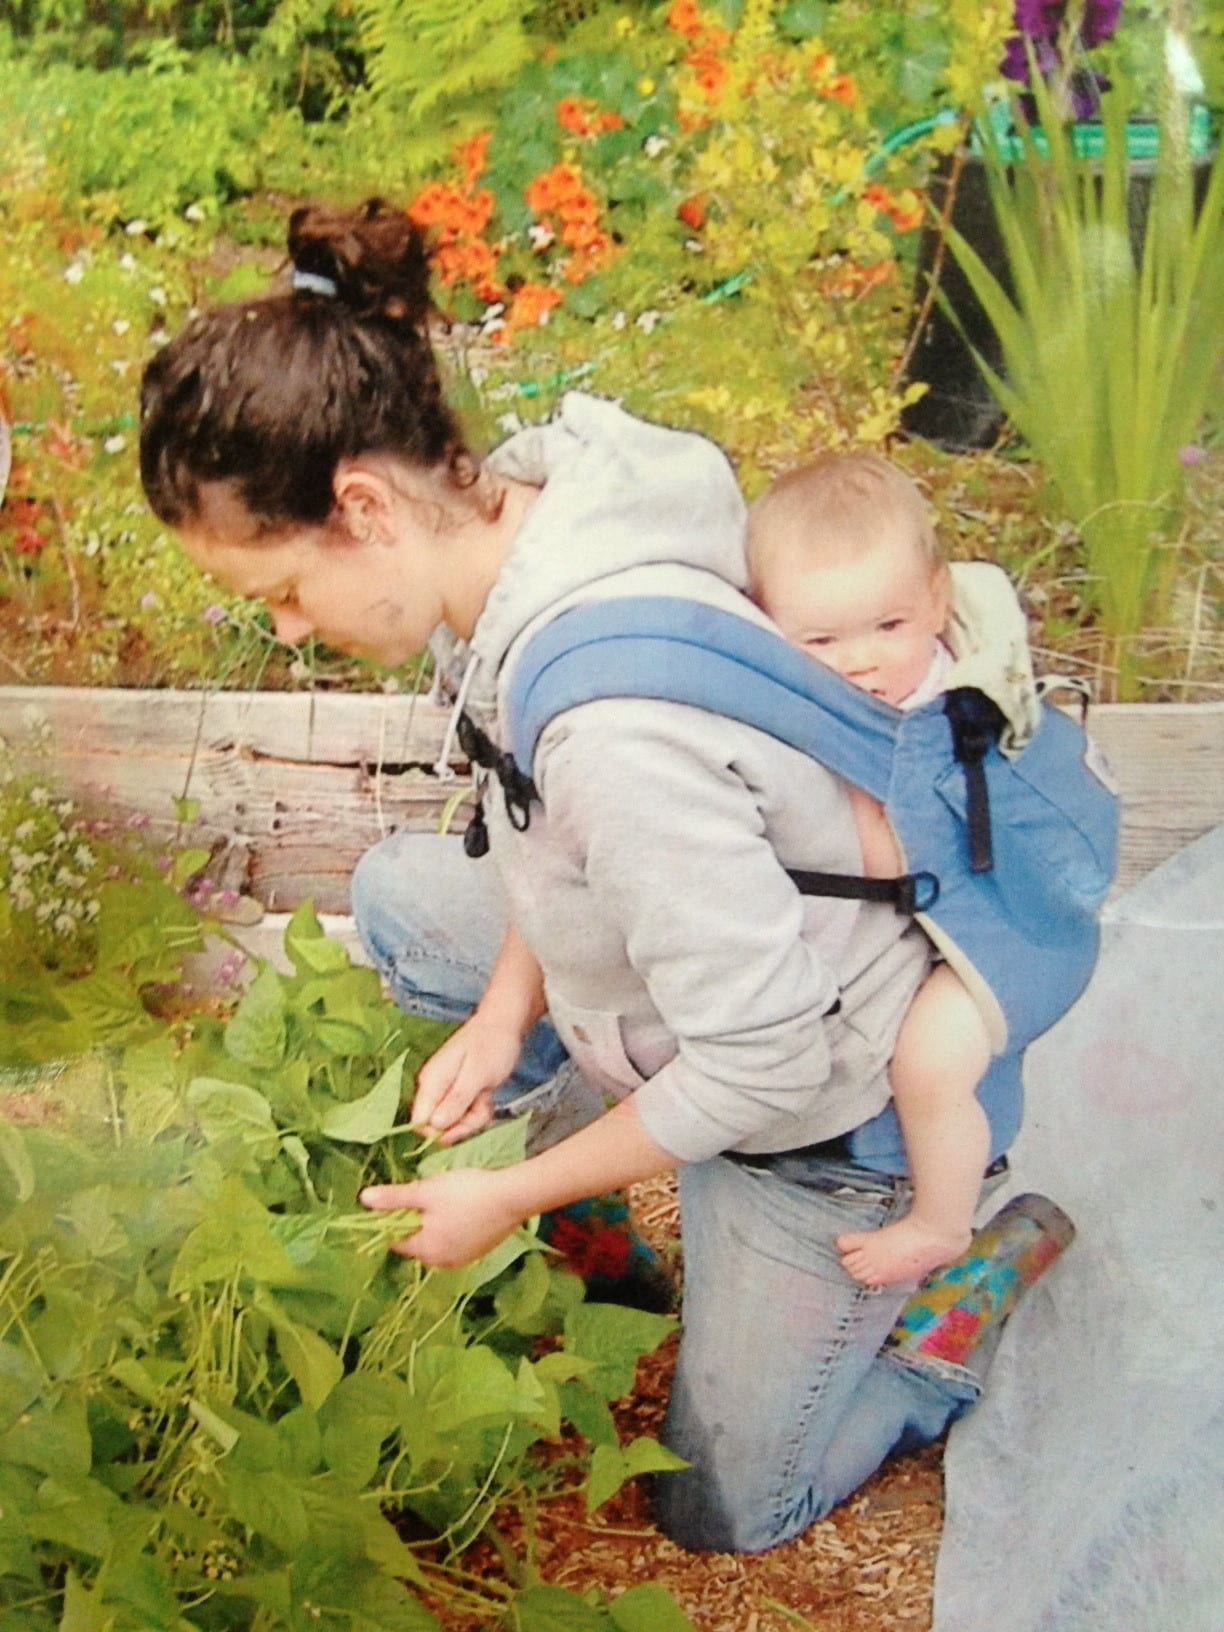 A person with a baby strapped to their back as they pick beans